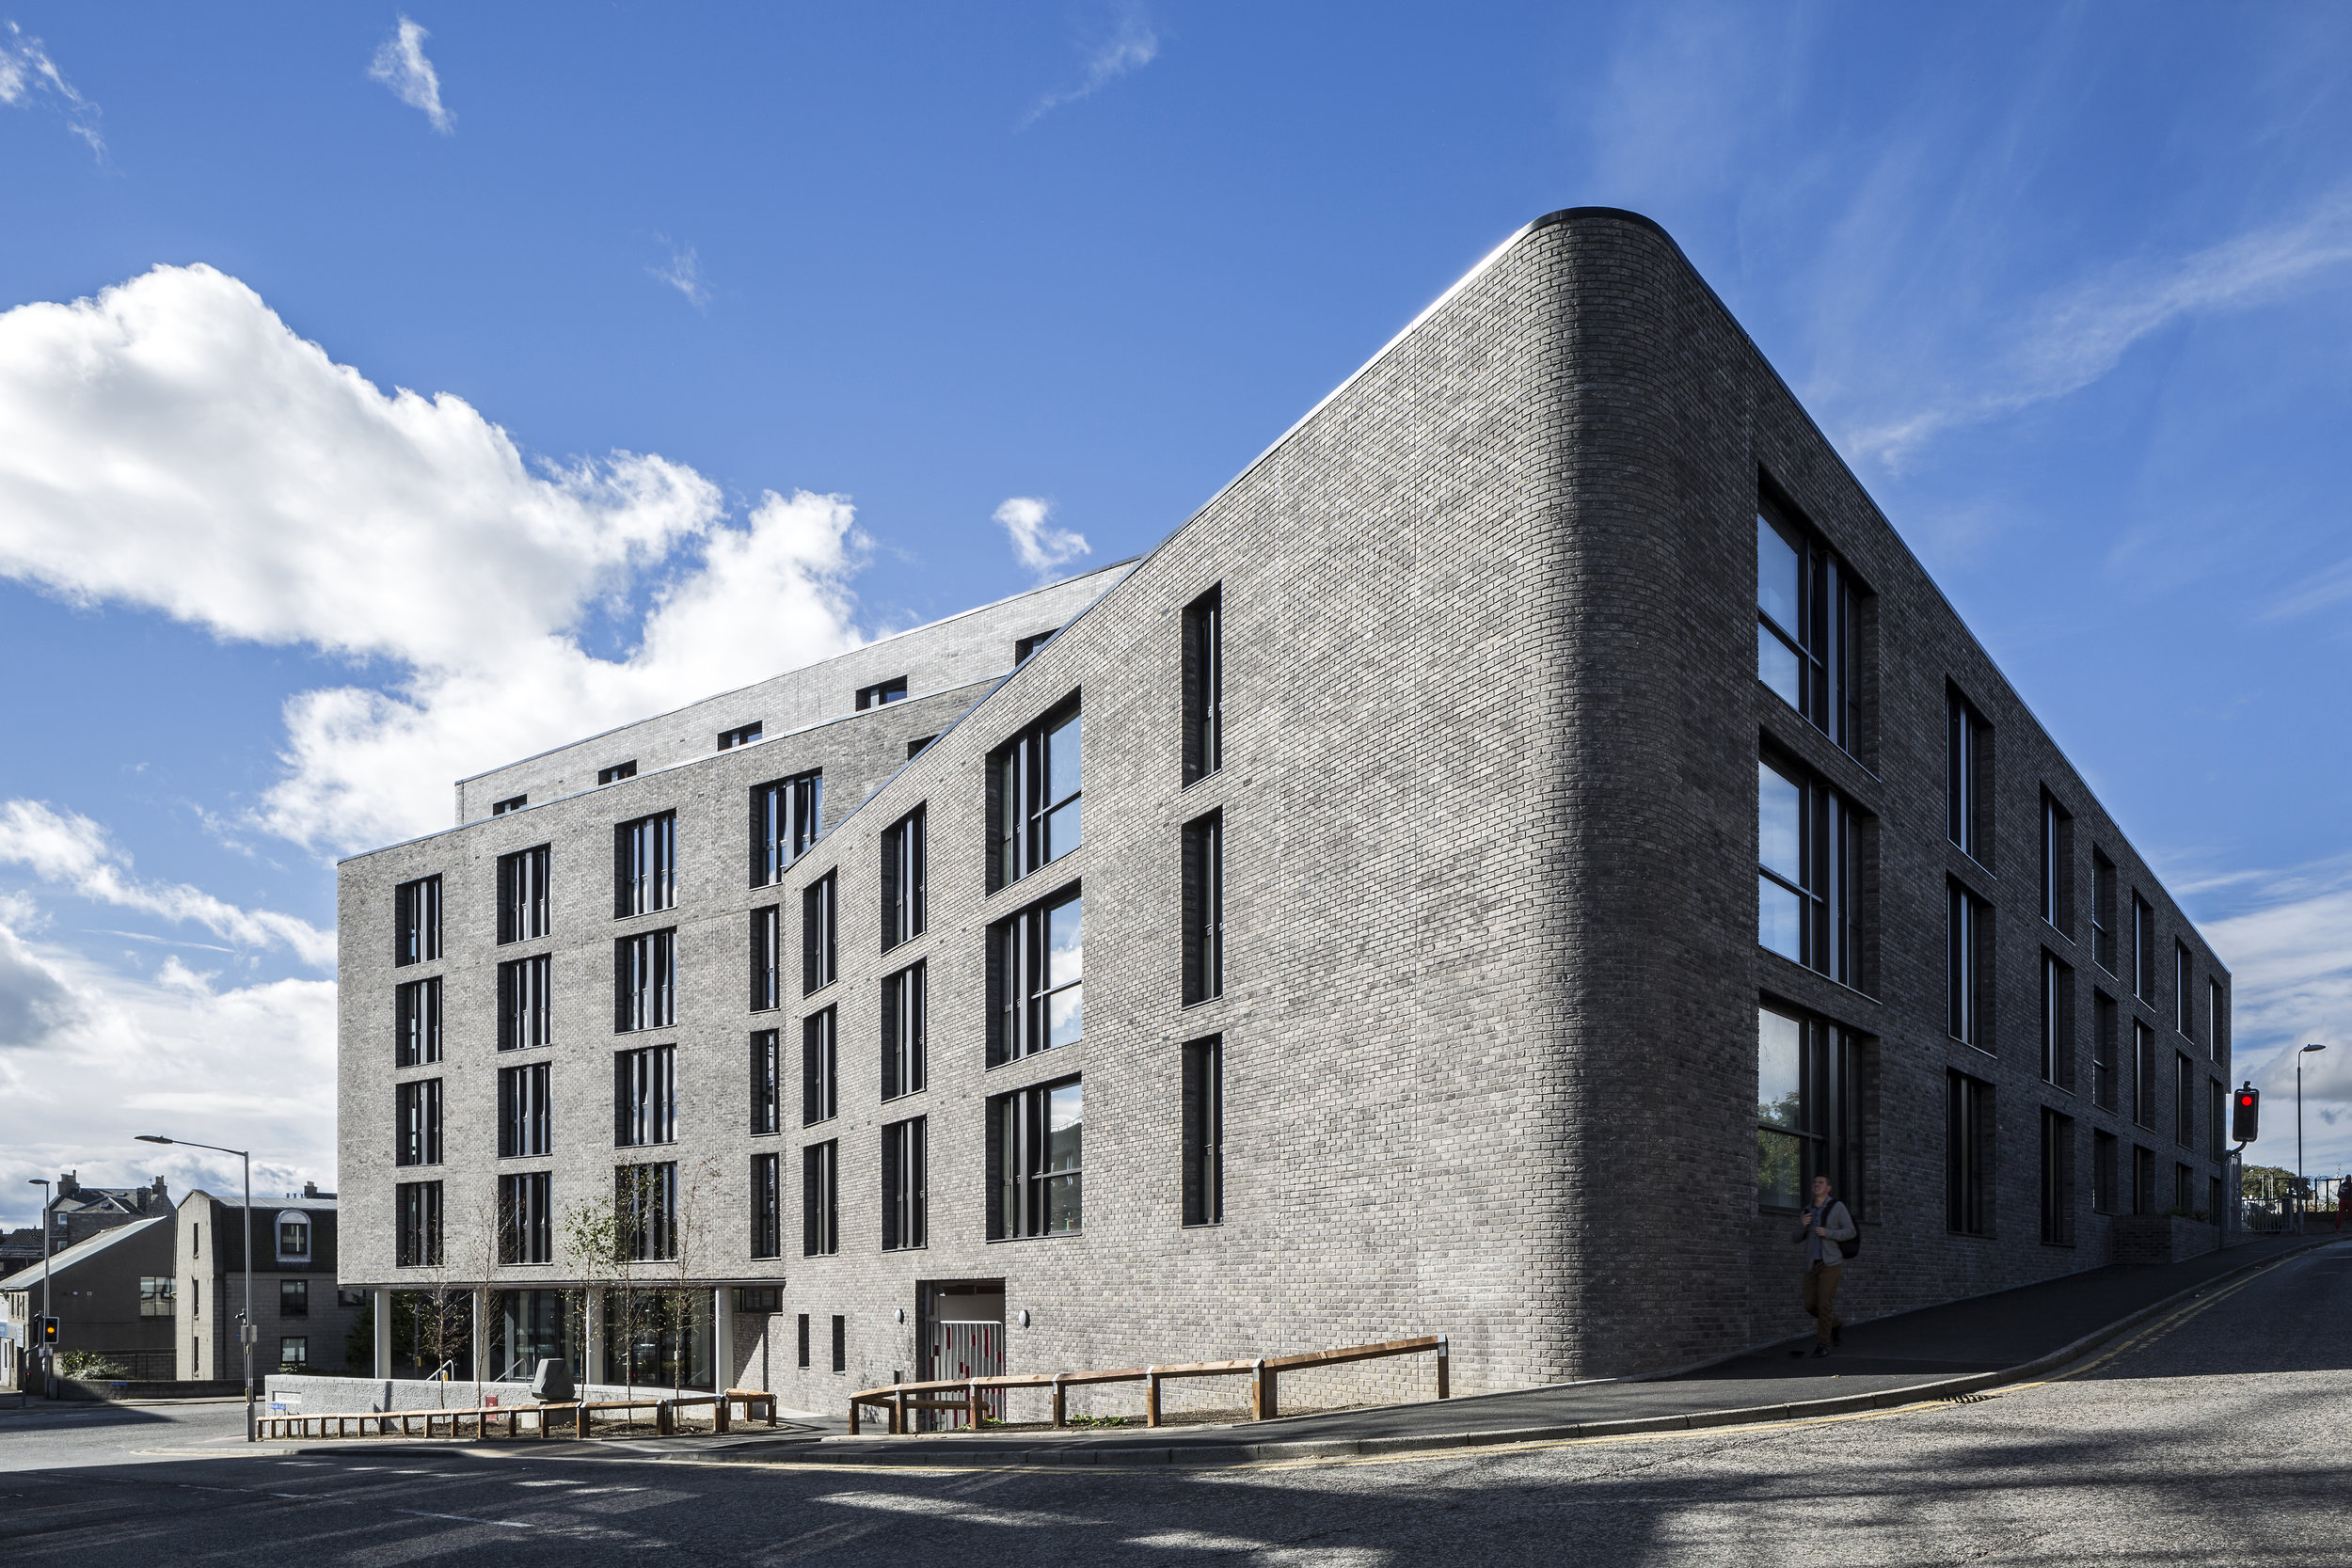 POWIS PLACE STUDENT RESIDENCES